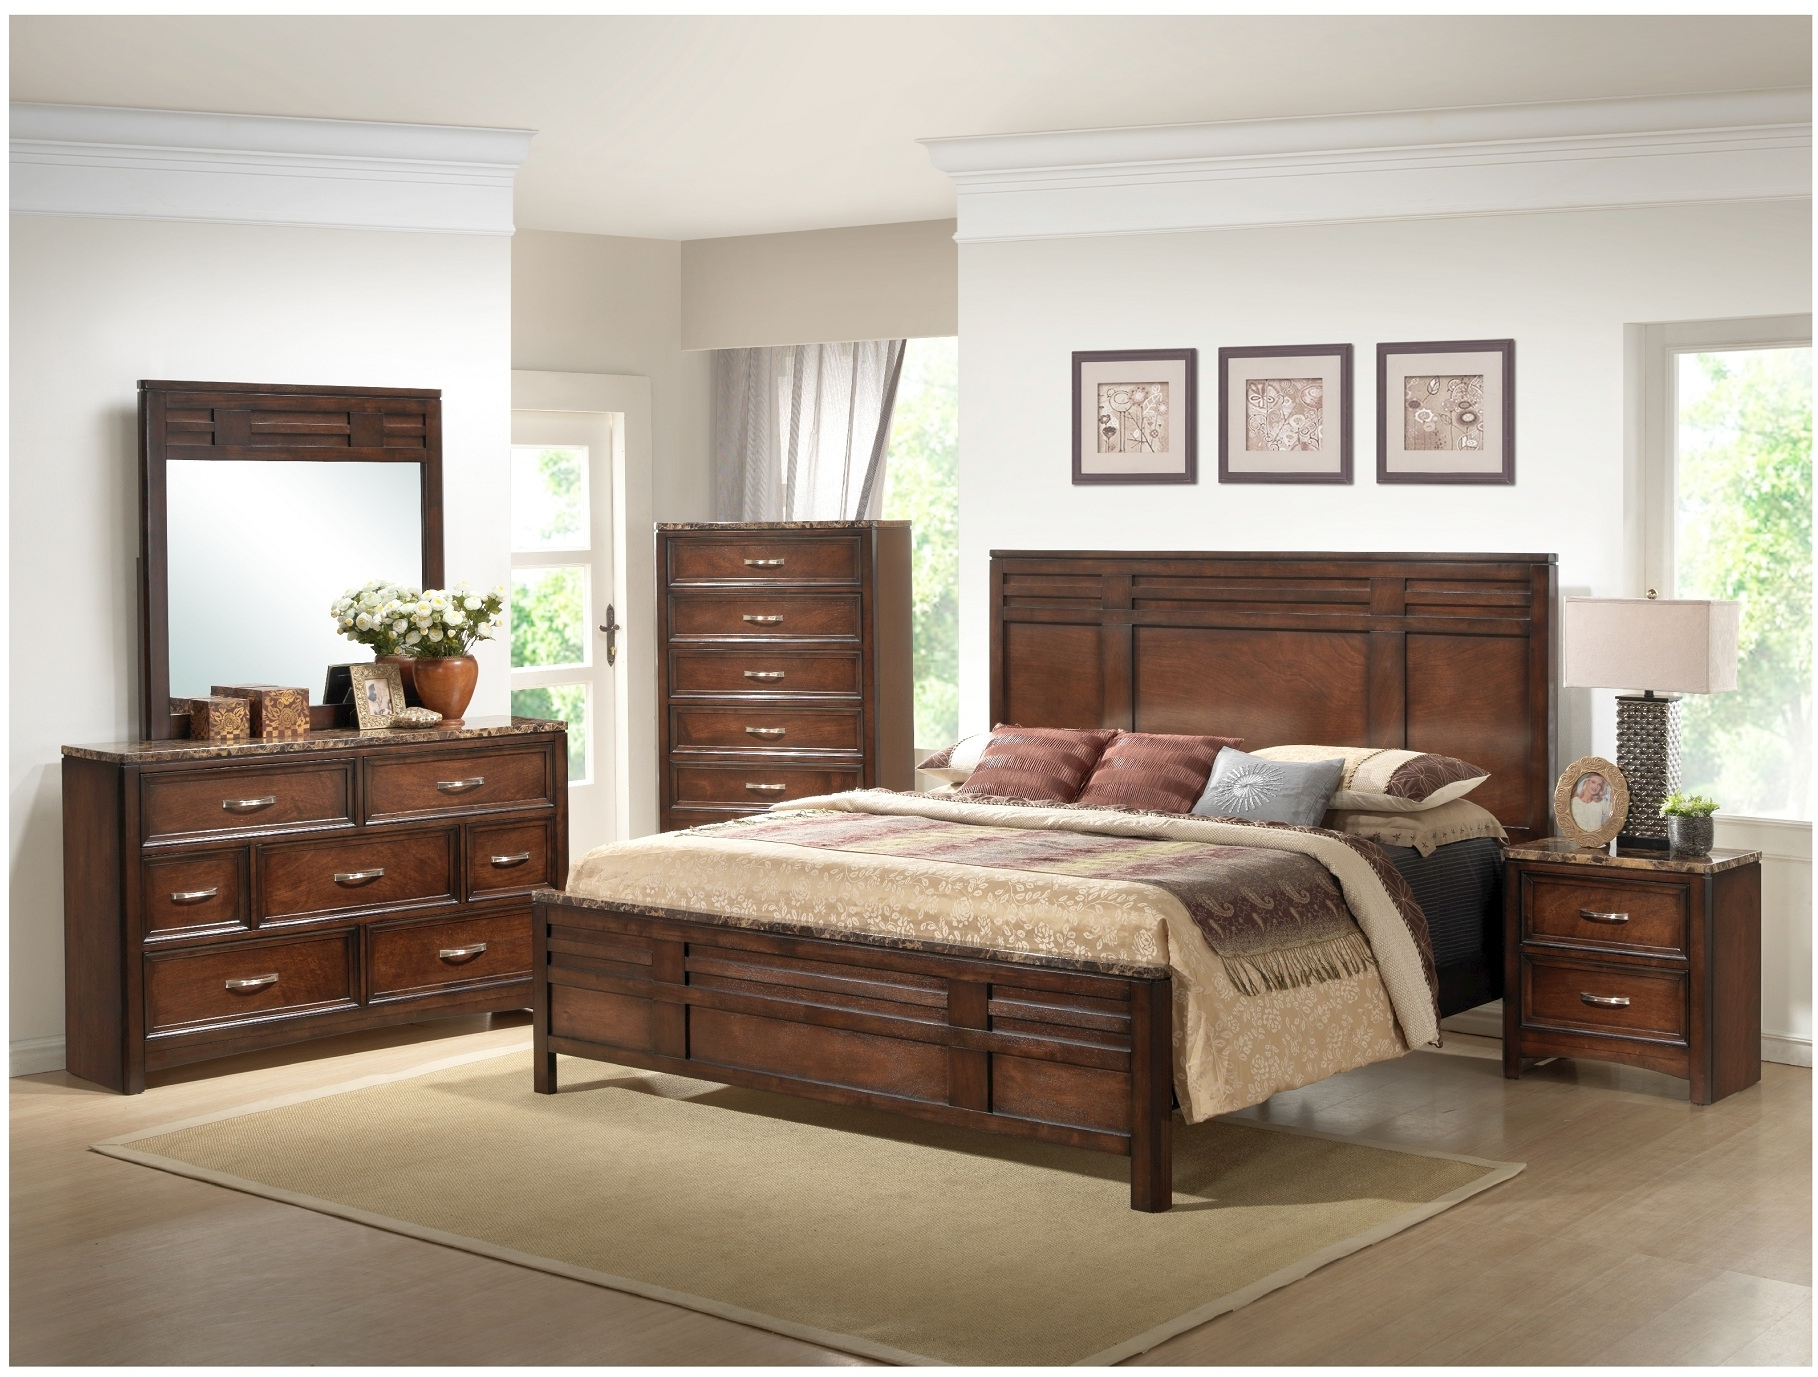 Elegant bedroom set bedroom ideas for Great bedroom furniture